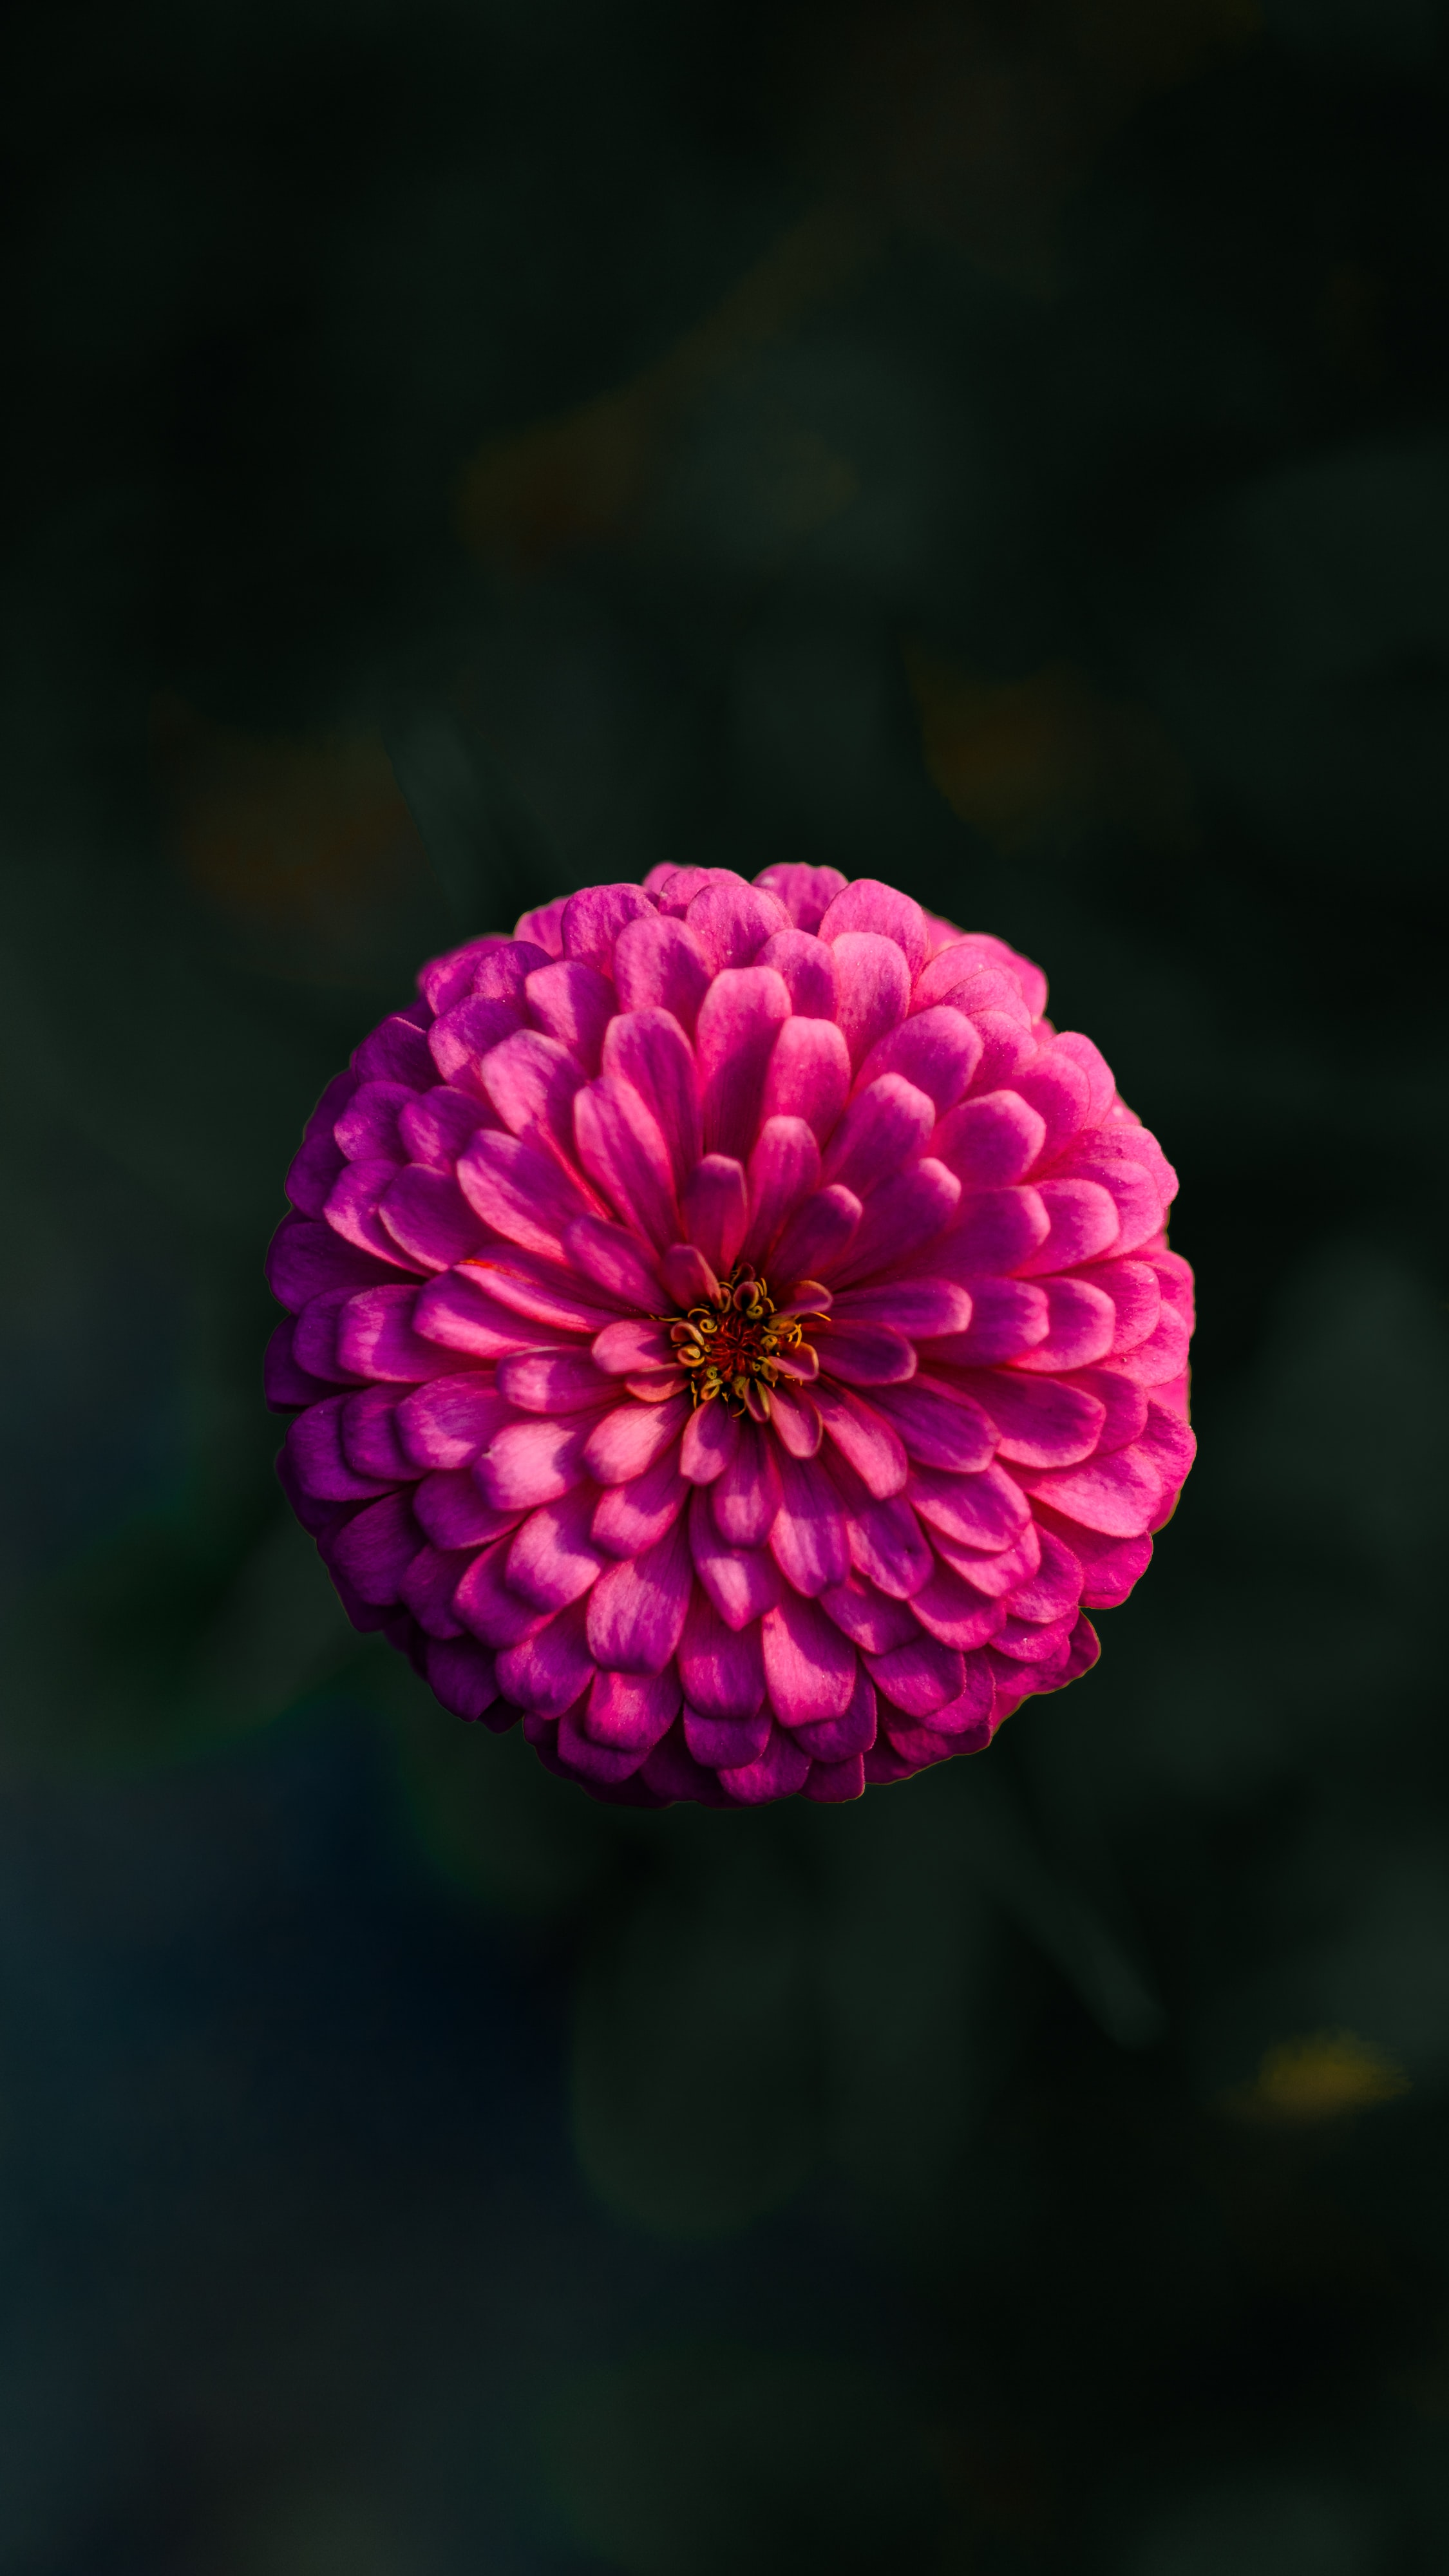 shallow focus photo of pink flower